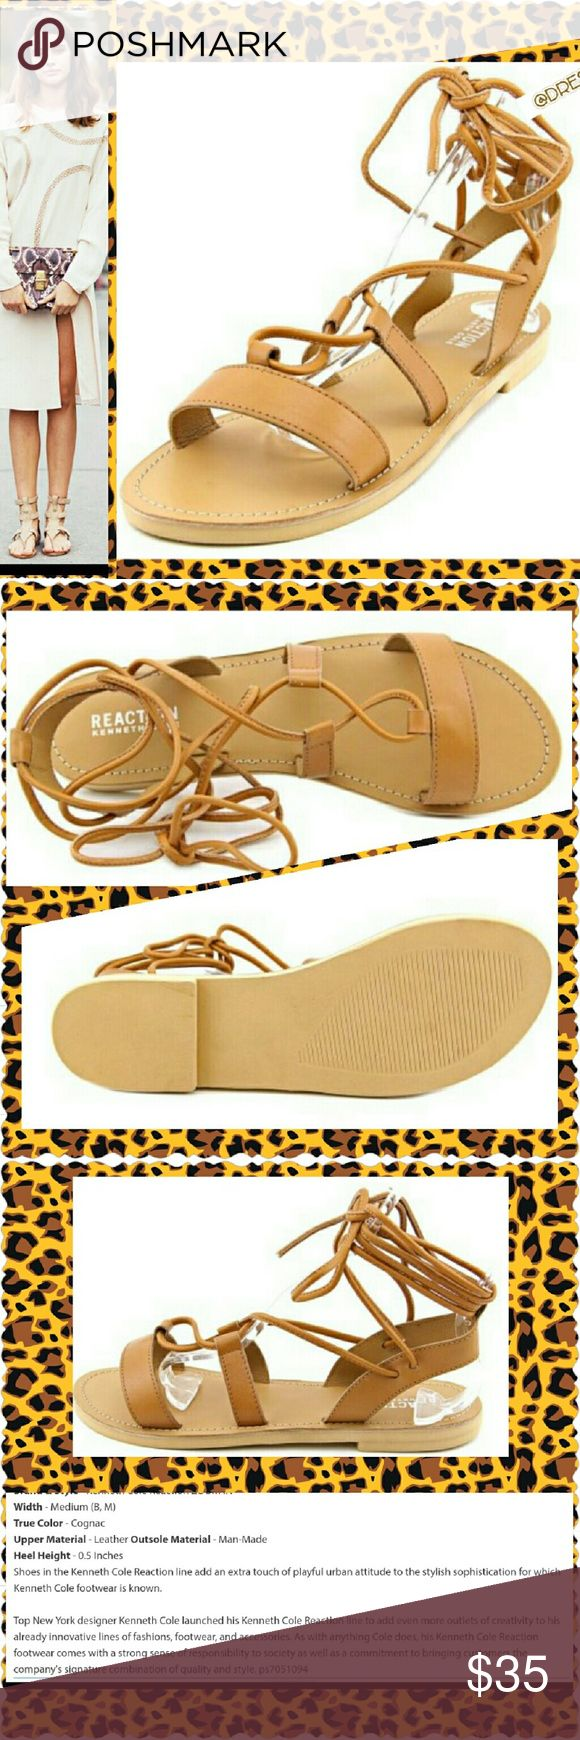 LEATHER GLADIATOR SOFT POWER SANDALS EXPOSE YOUR POWER WALK IN COMFORT CLASS FROM THE WEEKEND TO WEEKDAY YOU HAVE IT WITH THESE STATEMENT SANDALS AND YES COMFORT 1ST OR IS IT LOOKS NO MATTER IN THESE SANDALS YOU HAVE BOTH Kenneth Cole Reaction Shoes Sandals